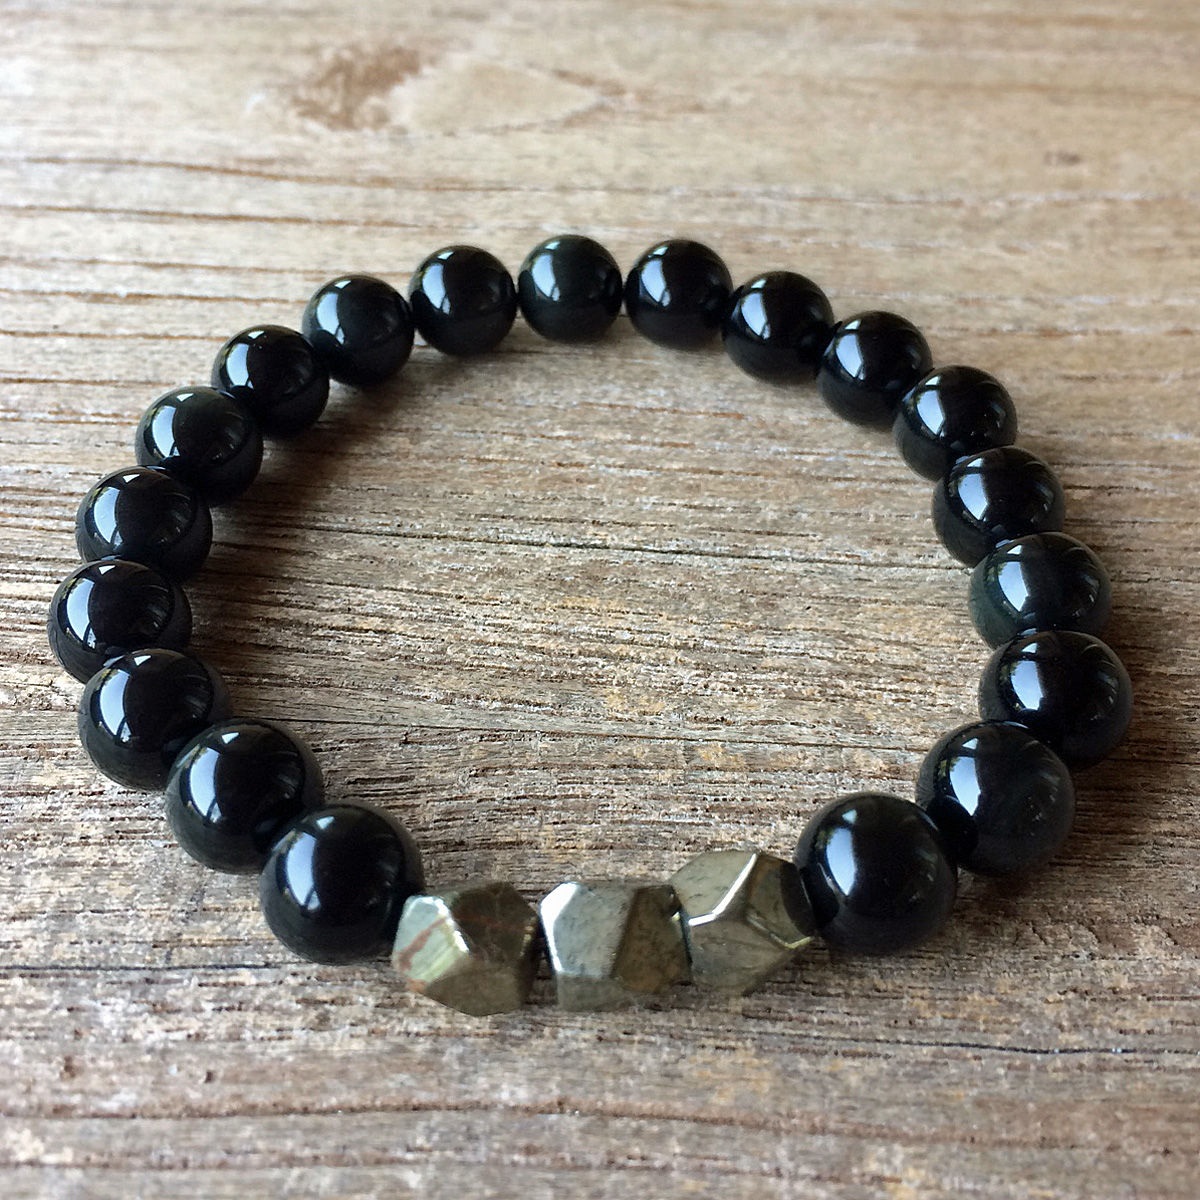 Boyfriend beads- Obsidian and Pyrite